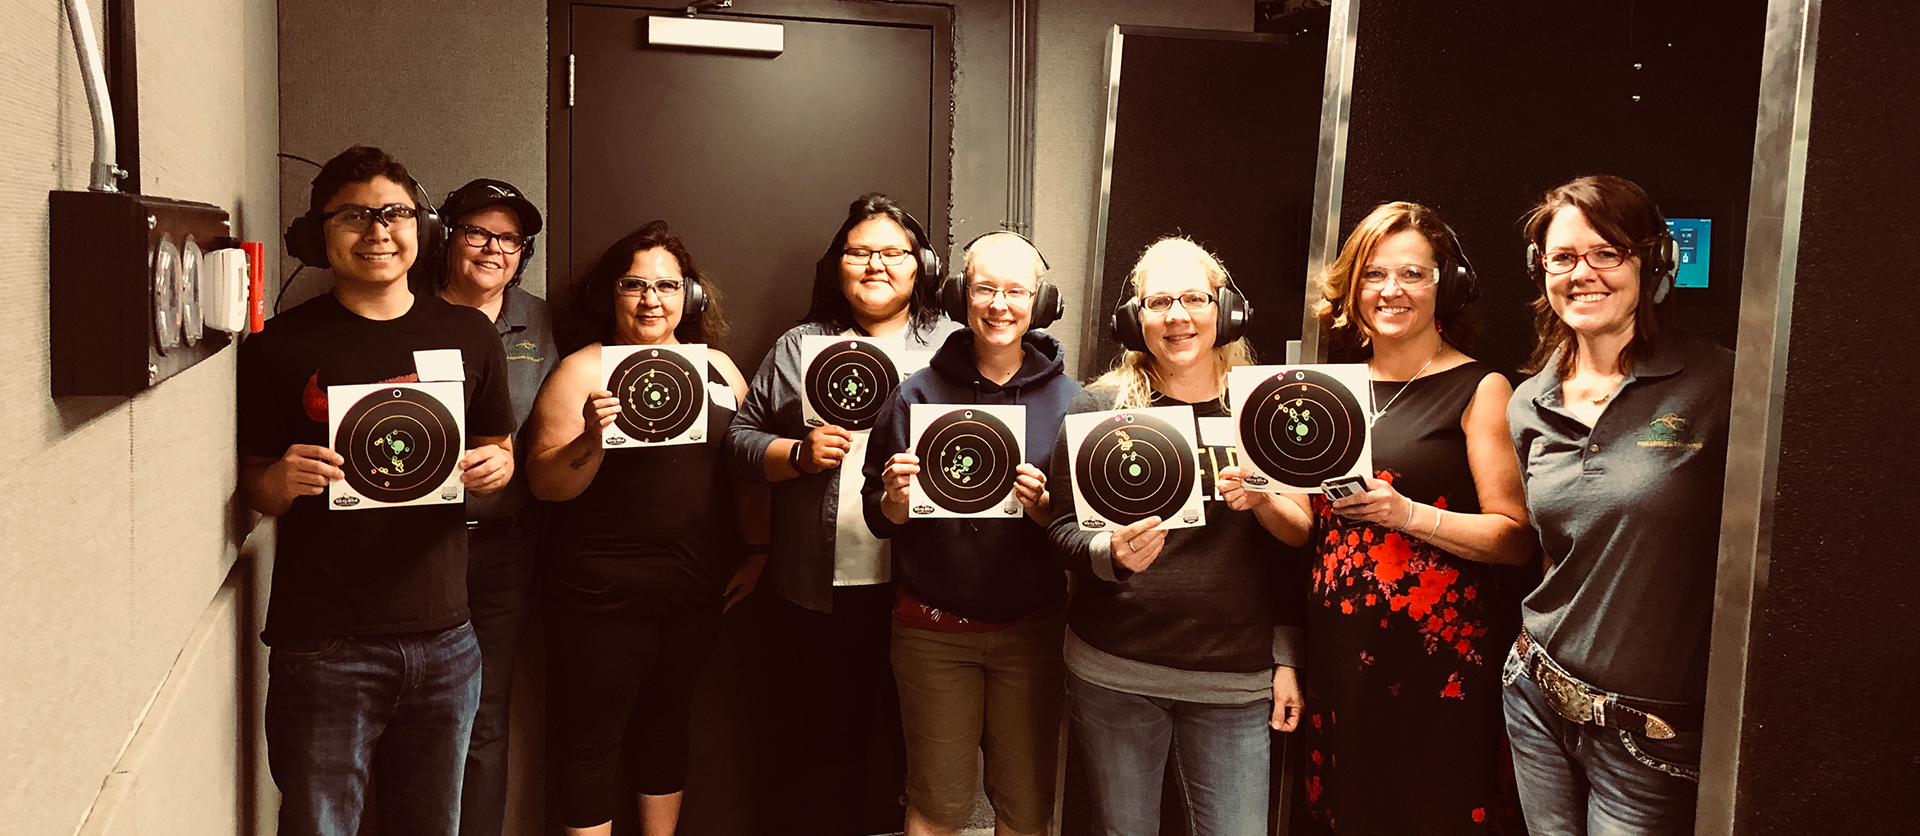 Women shooters with targets at Timberline Firearms